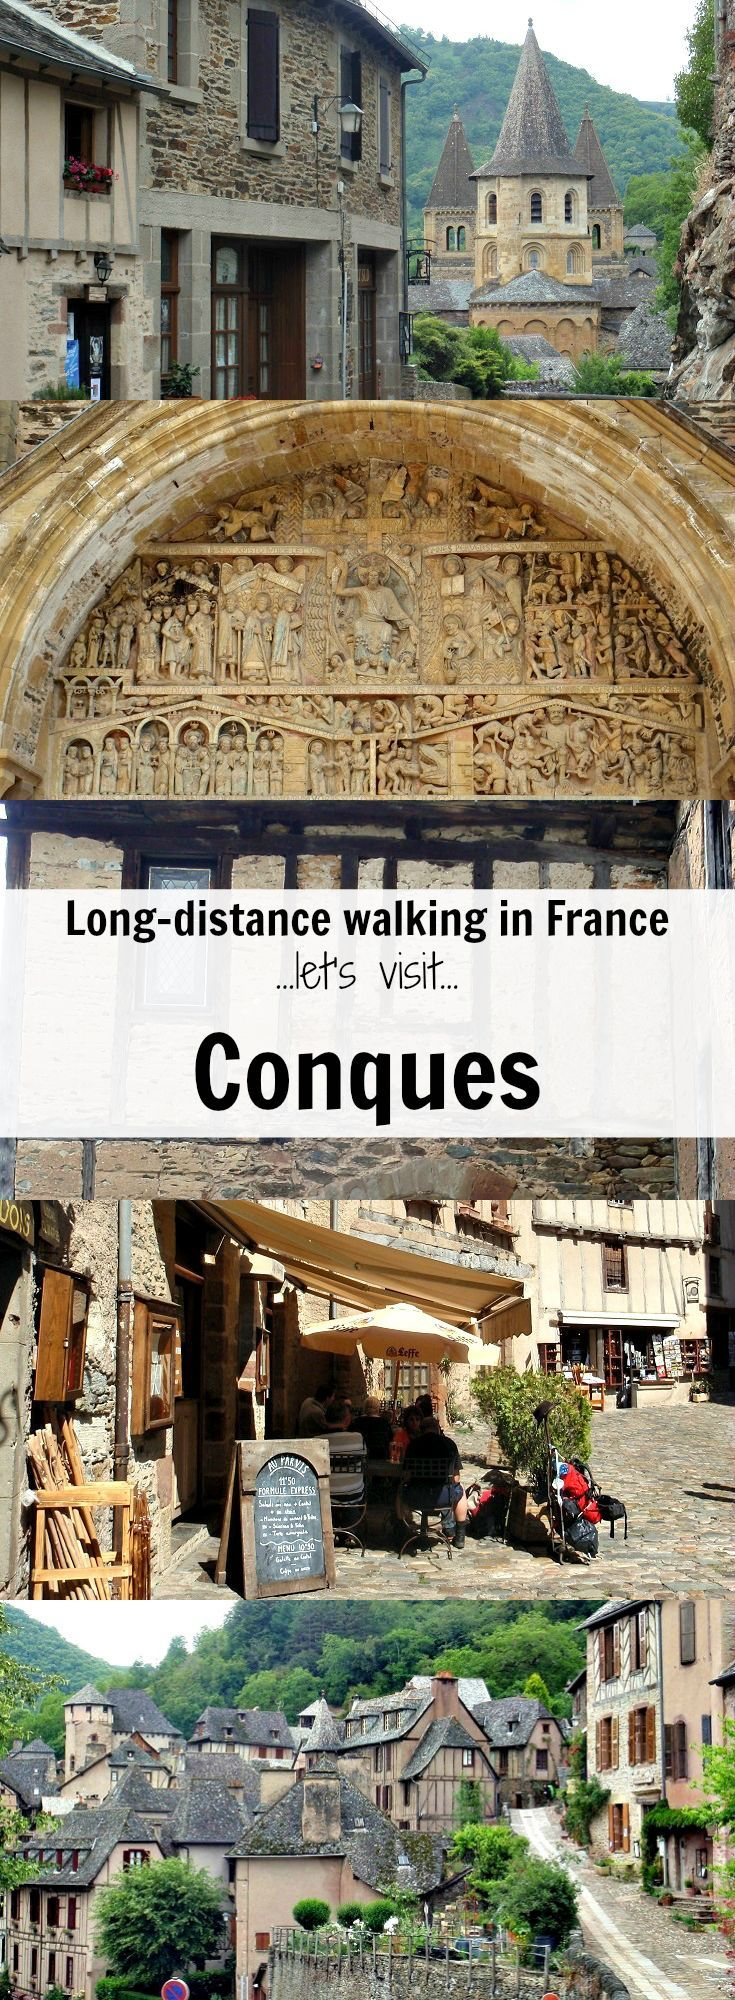 France Travel inspiration - 5 unforgettable moments in Conques, France